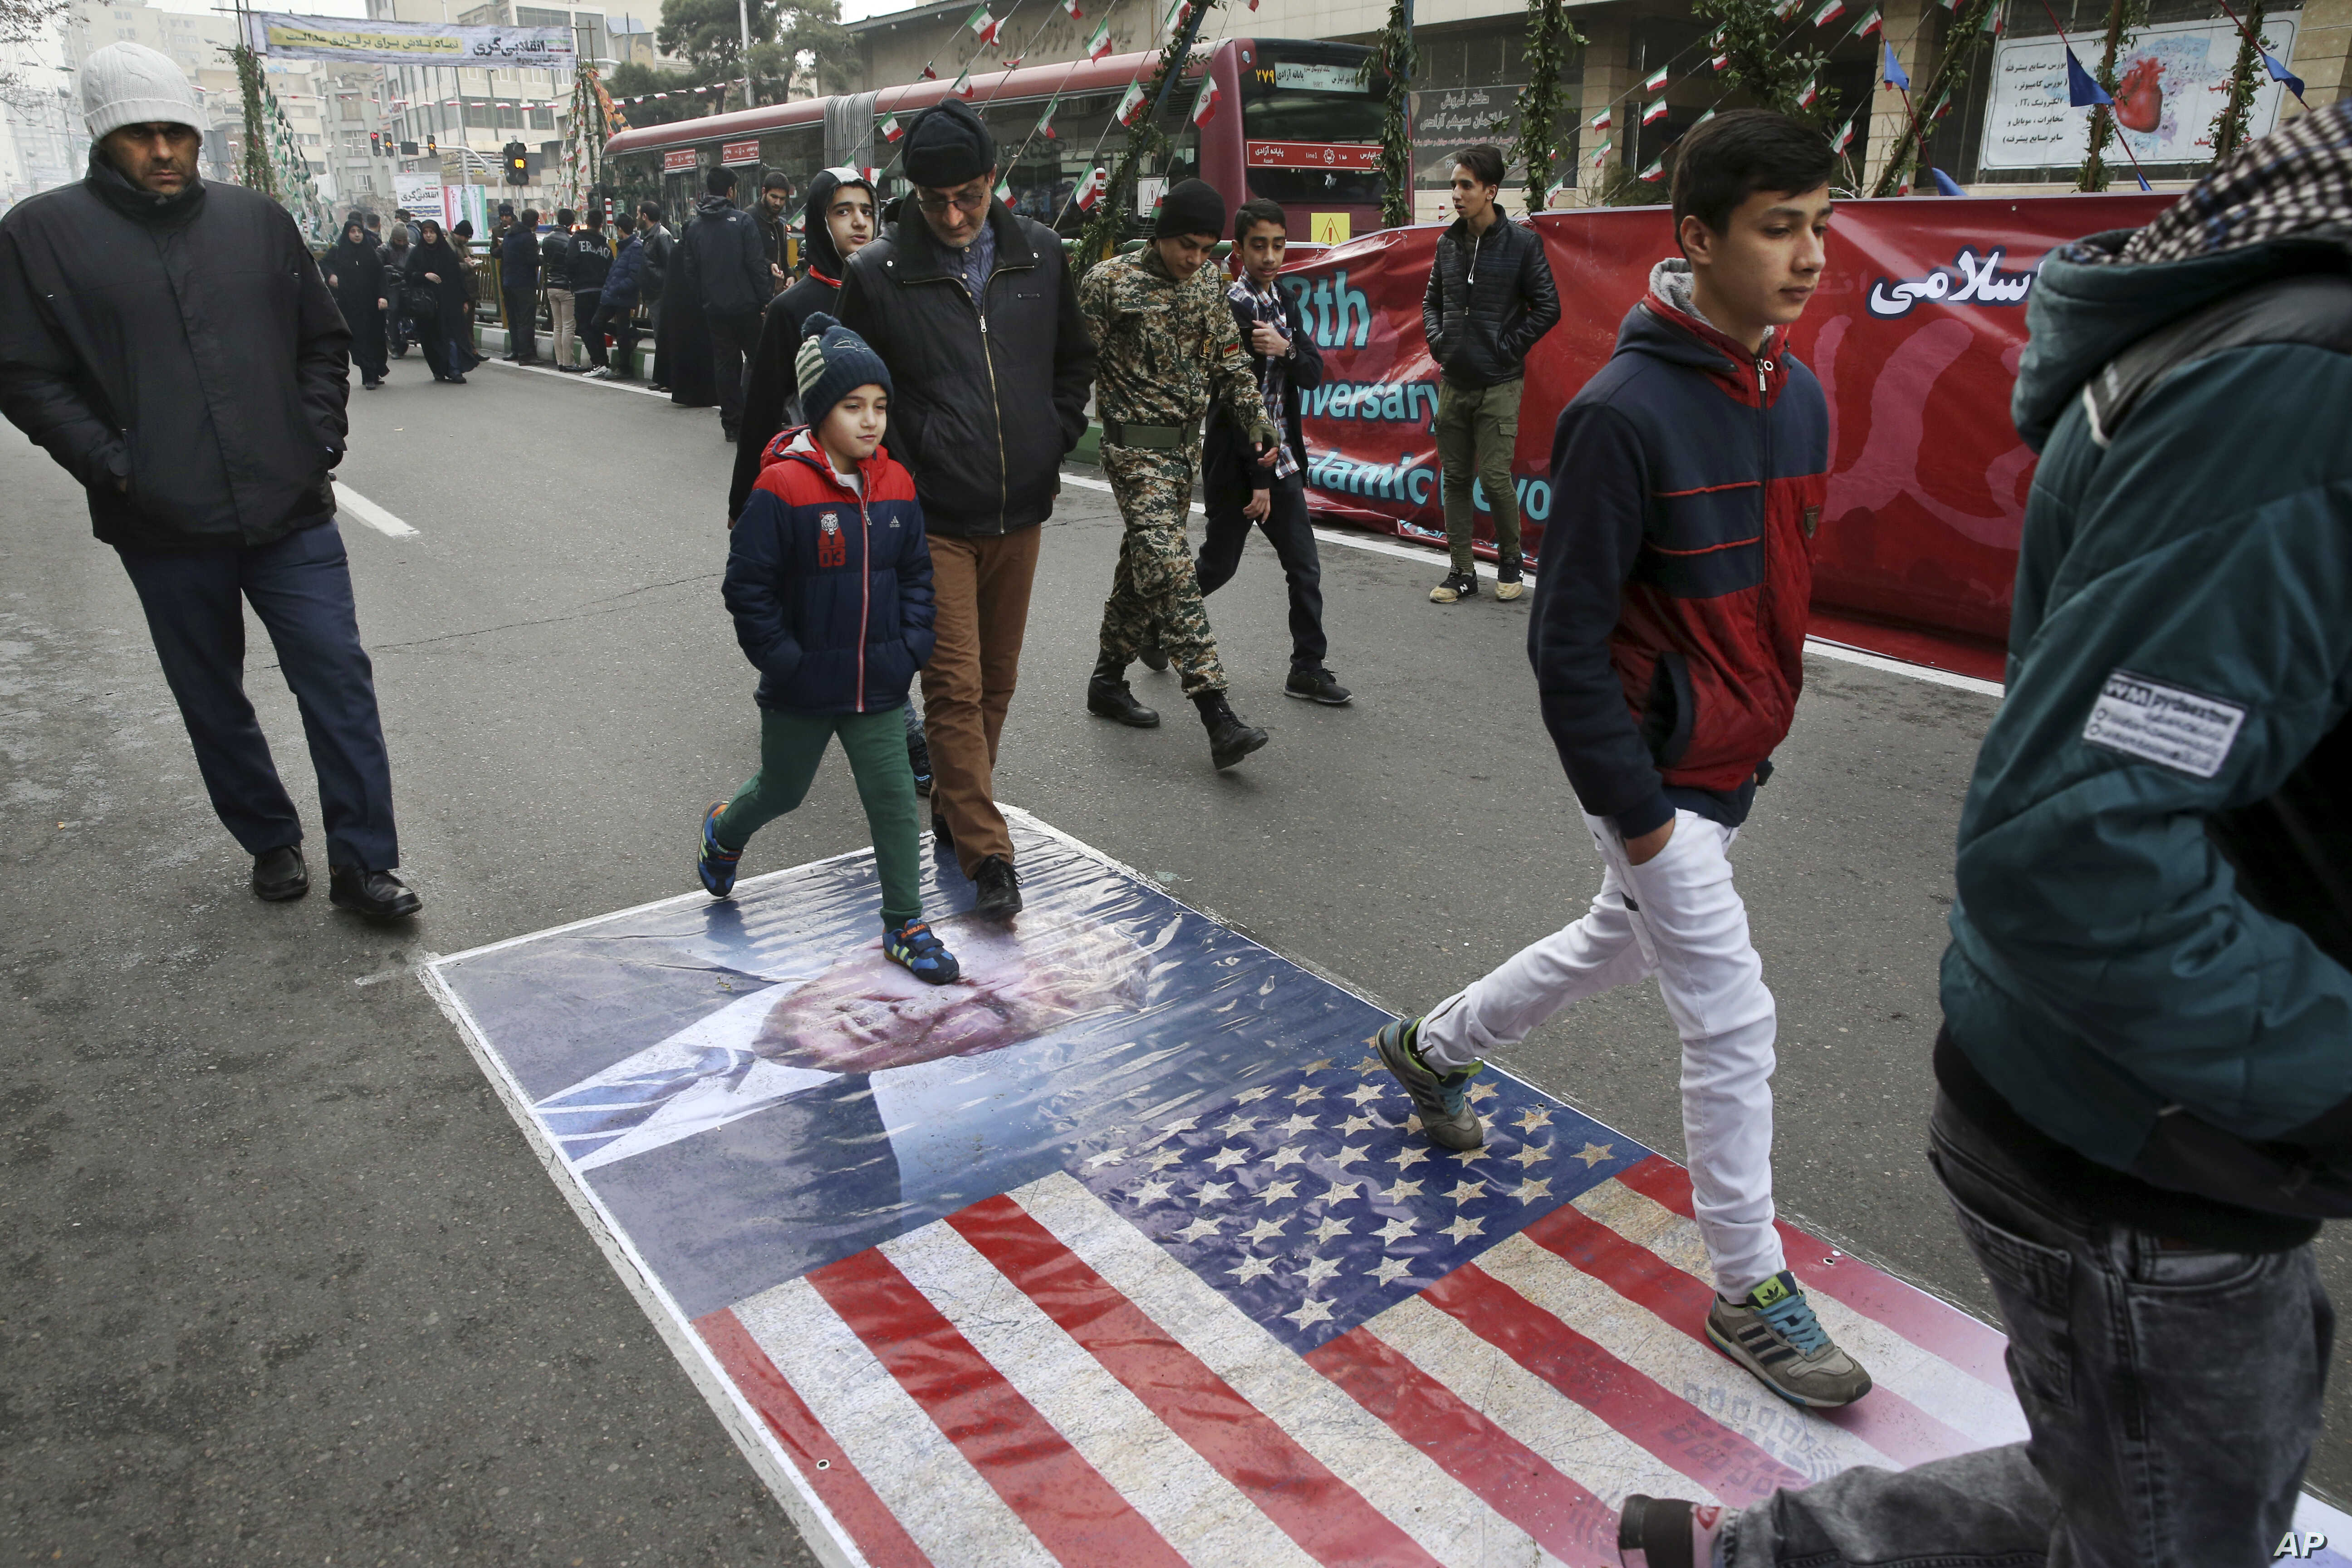 Iranians march on a portrait of U.S. President Donald Trump and the picture of U.S. flag in an annual rally commemorating the anniversary of the 1979 Islamic revolution, which toppled the late pro-U.S. Shah, Mohammad Reza Pahlavi, in Tehran, Iran, Fe...